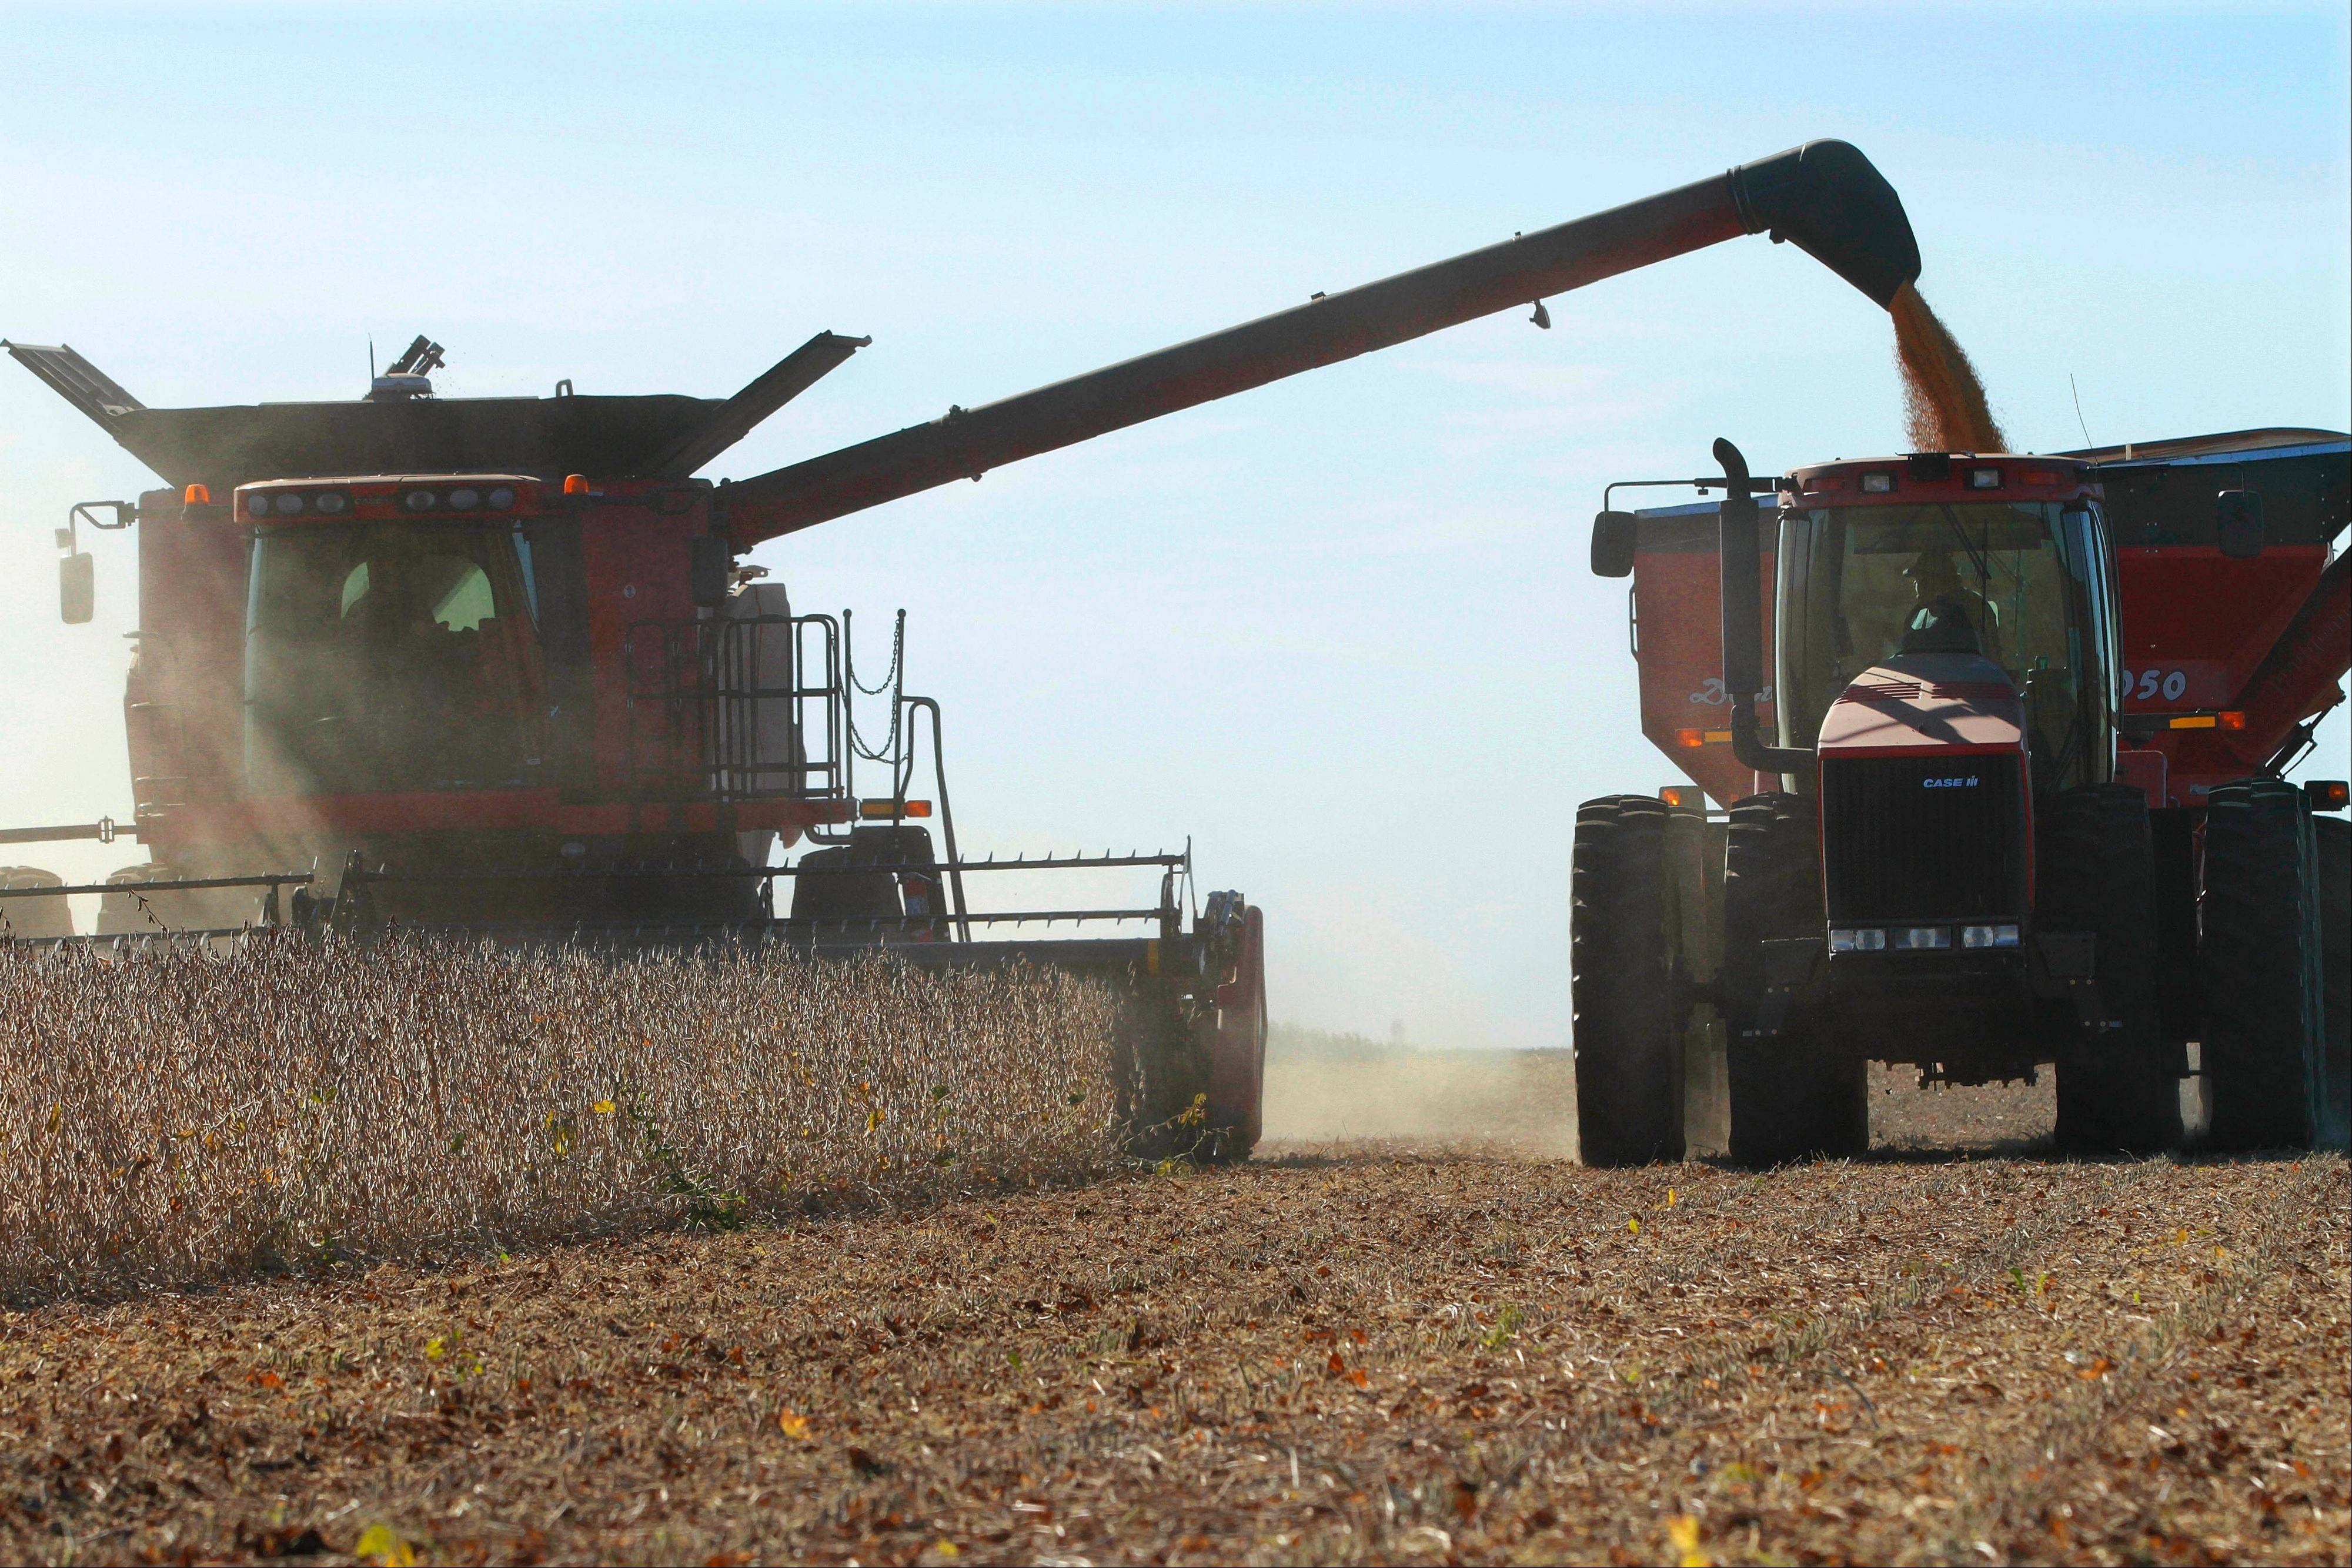 The U.S. economy grew at a sluggish 1.3 percent annual rate in the April-June quarter, held back by the severe drought that reduced farm production in the Midwest. About half of the downward revision to growth came from a decline in farm production. The estimate for crop production was slashed by $12 billion.